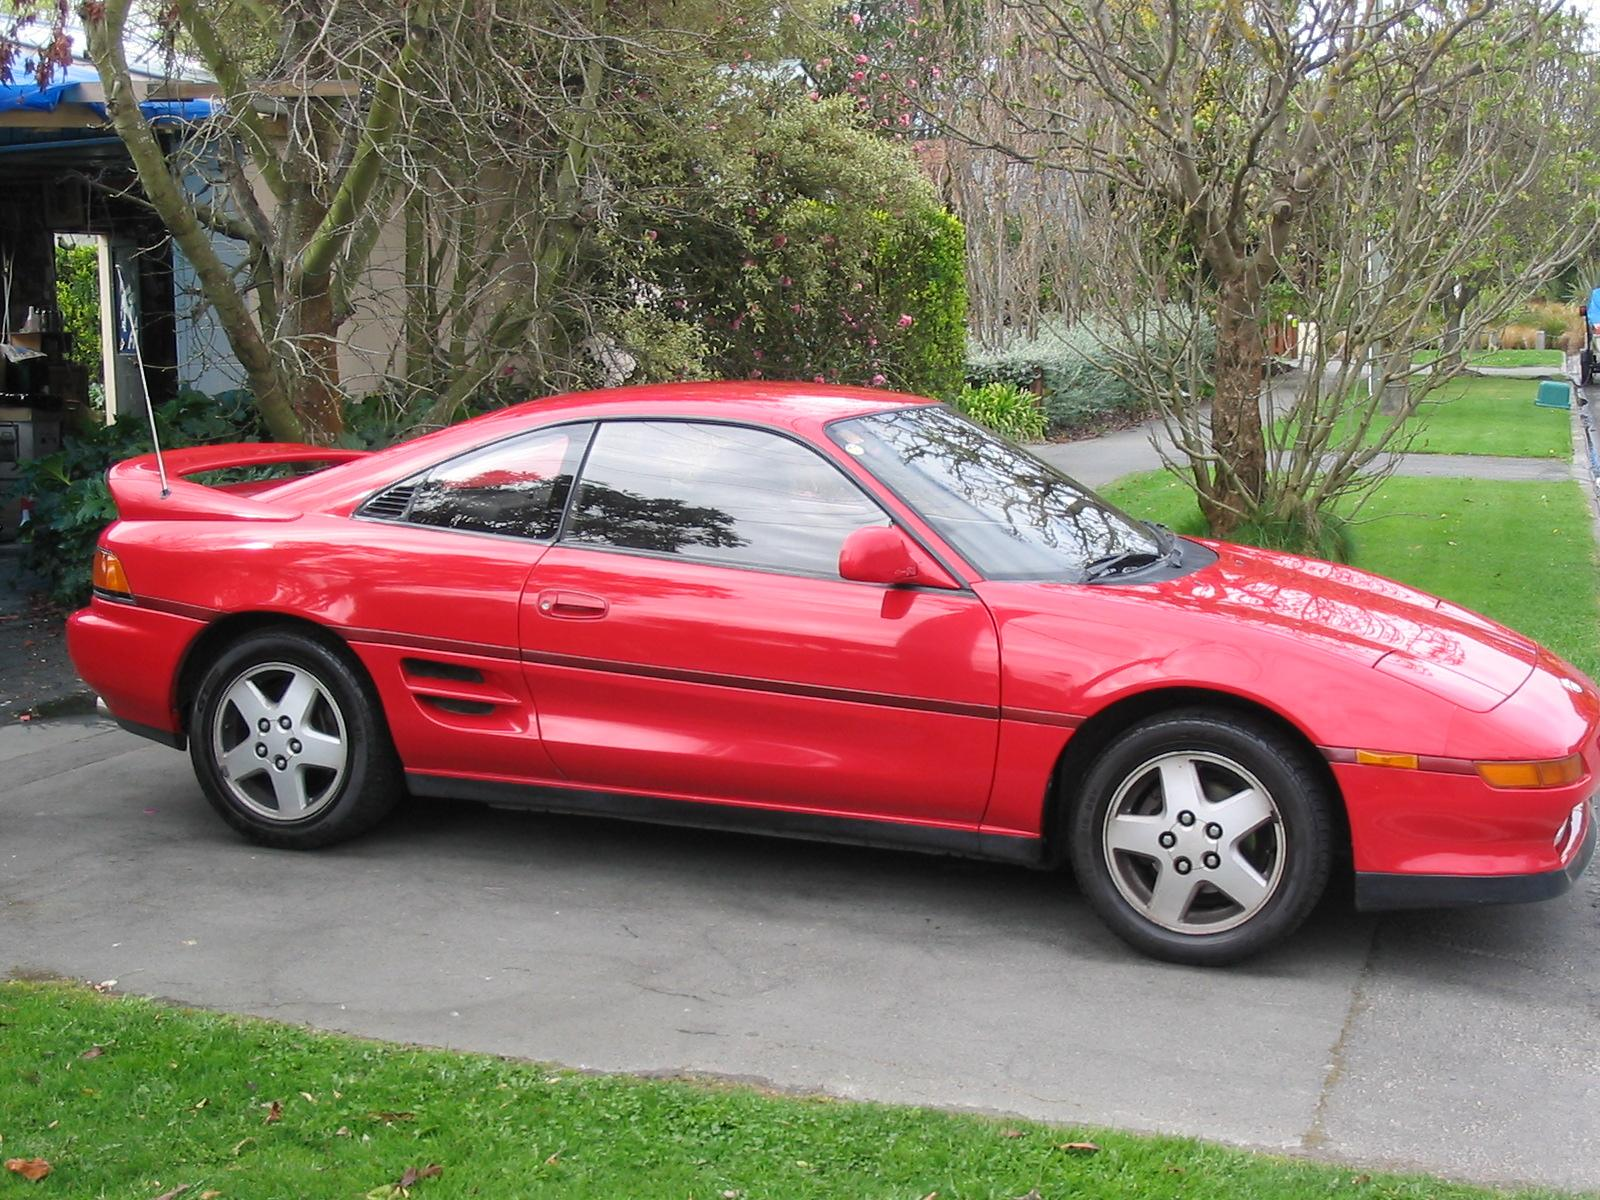 1994 Toyota Mr2 Information And Photos Zombiedrive Wiring Diagram 1 800 1024 1280 1600 Origin